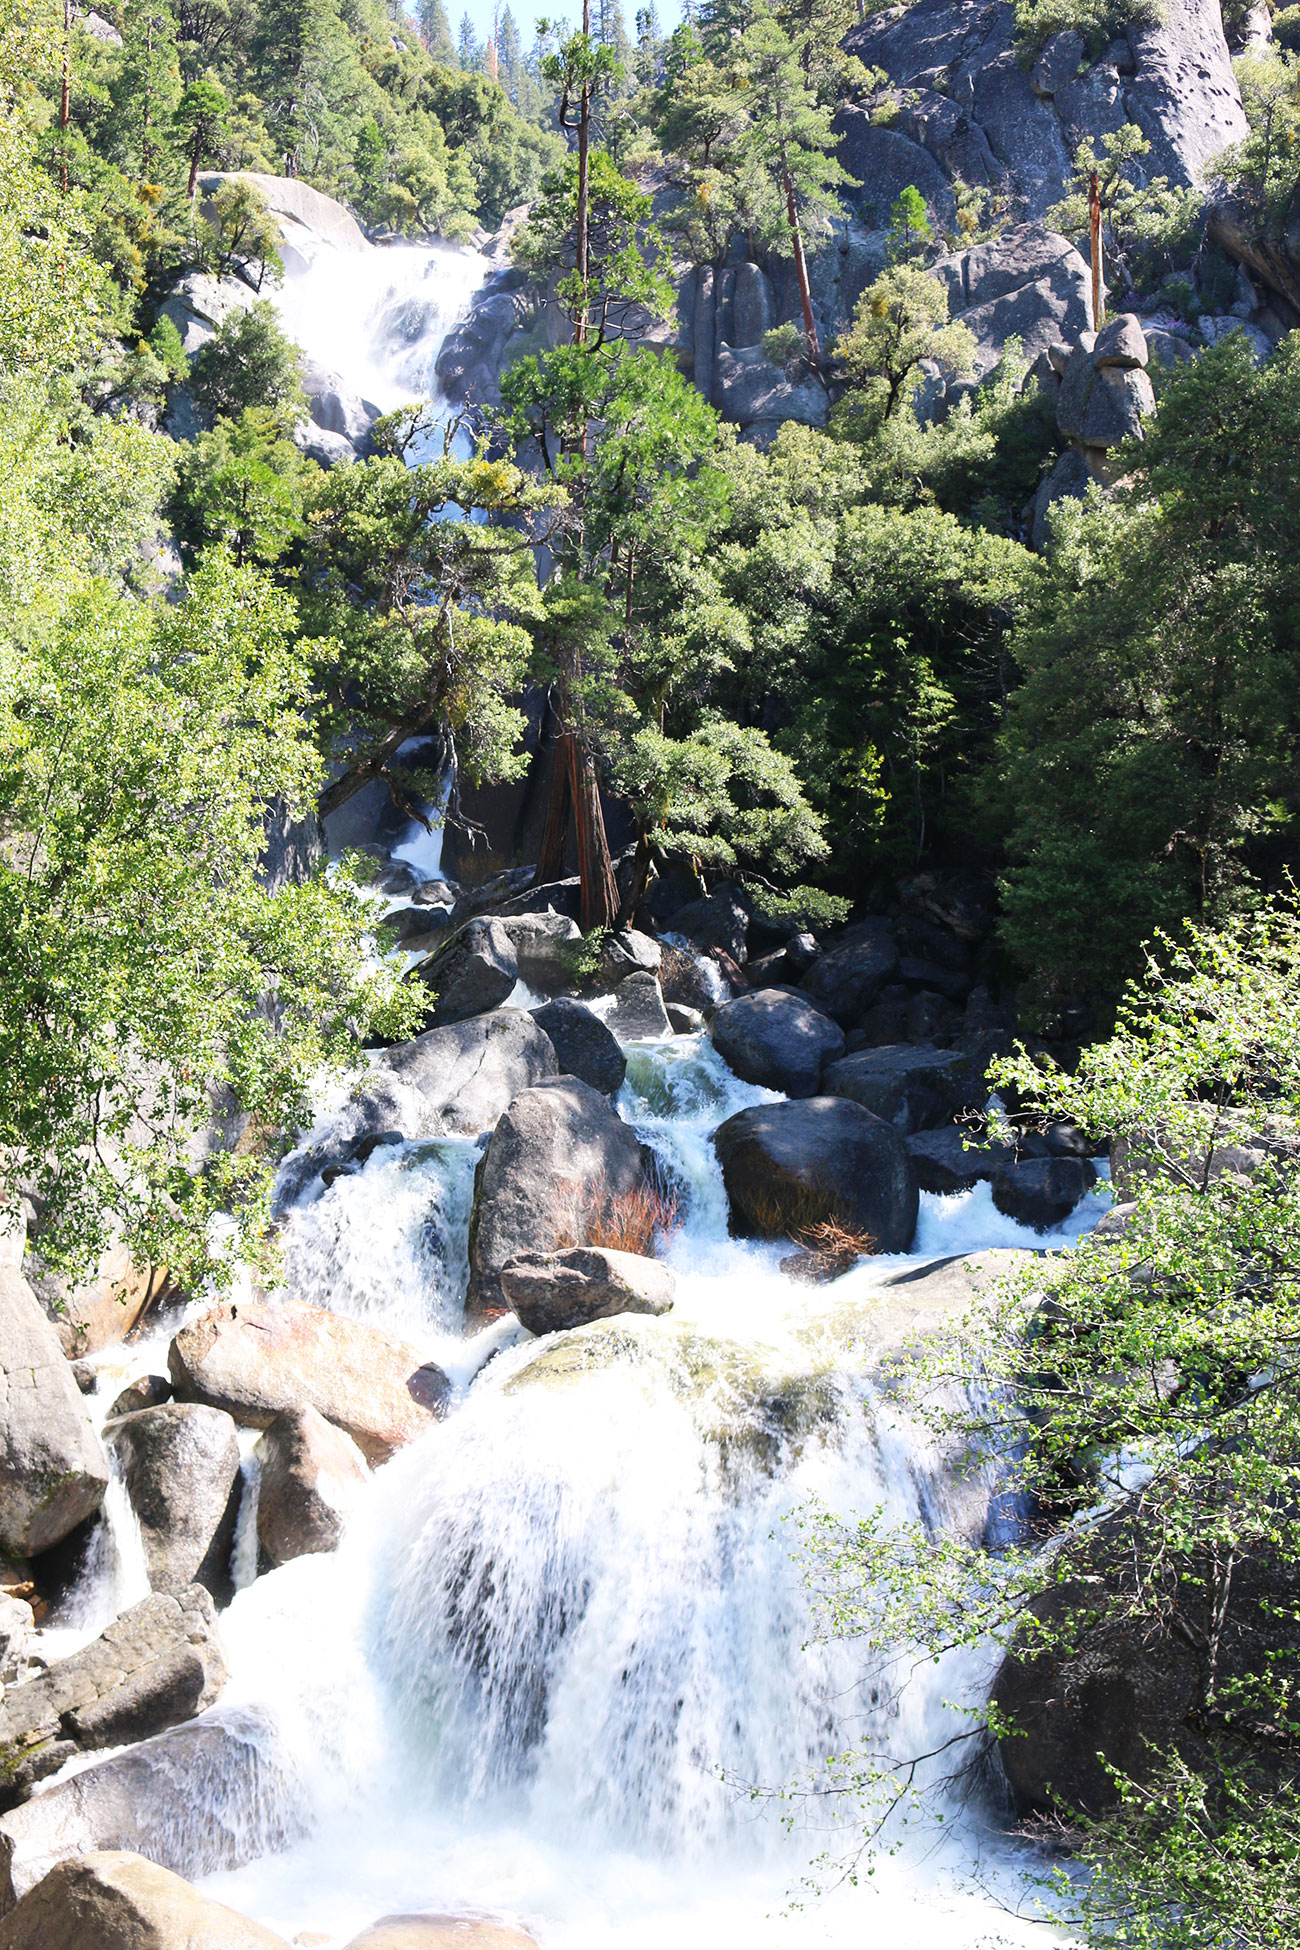 Yosemite National Park, Etats-Unis, USA, Road Trip, Chute d'eau